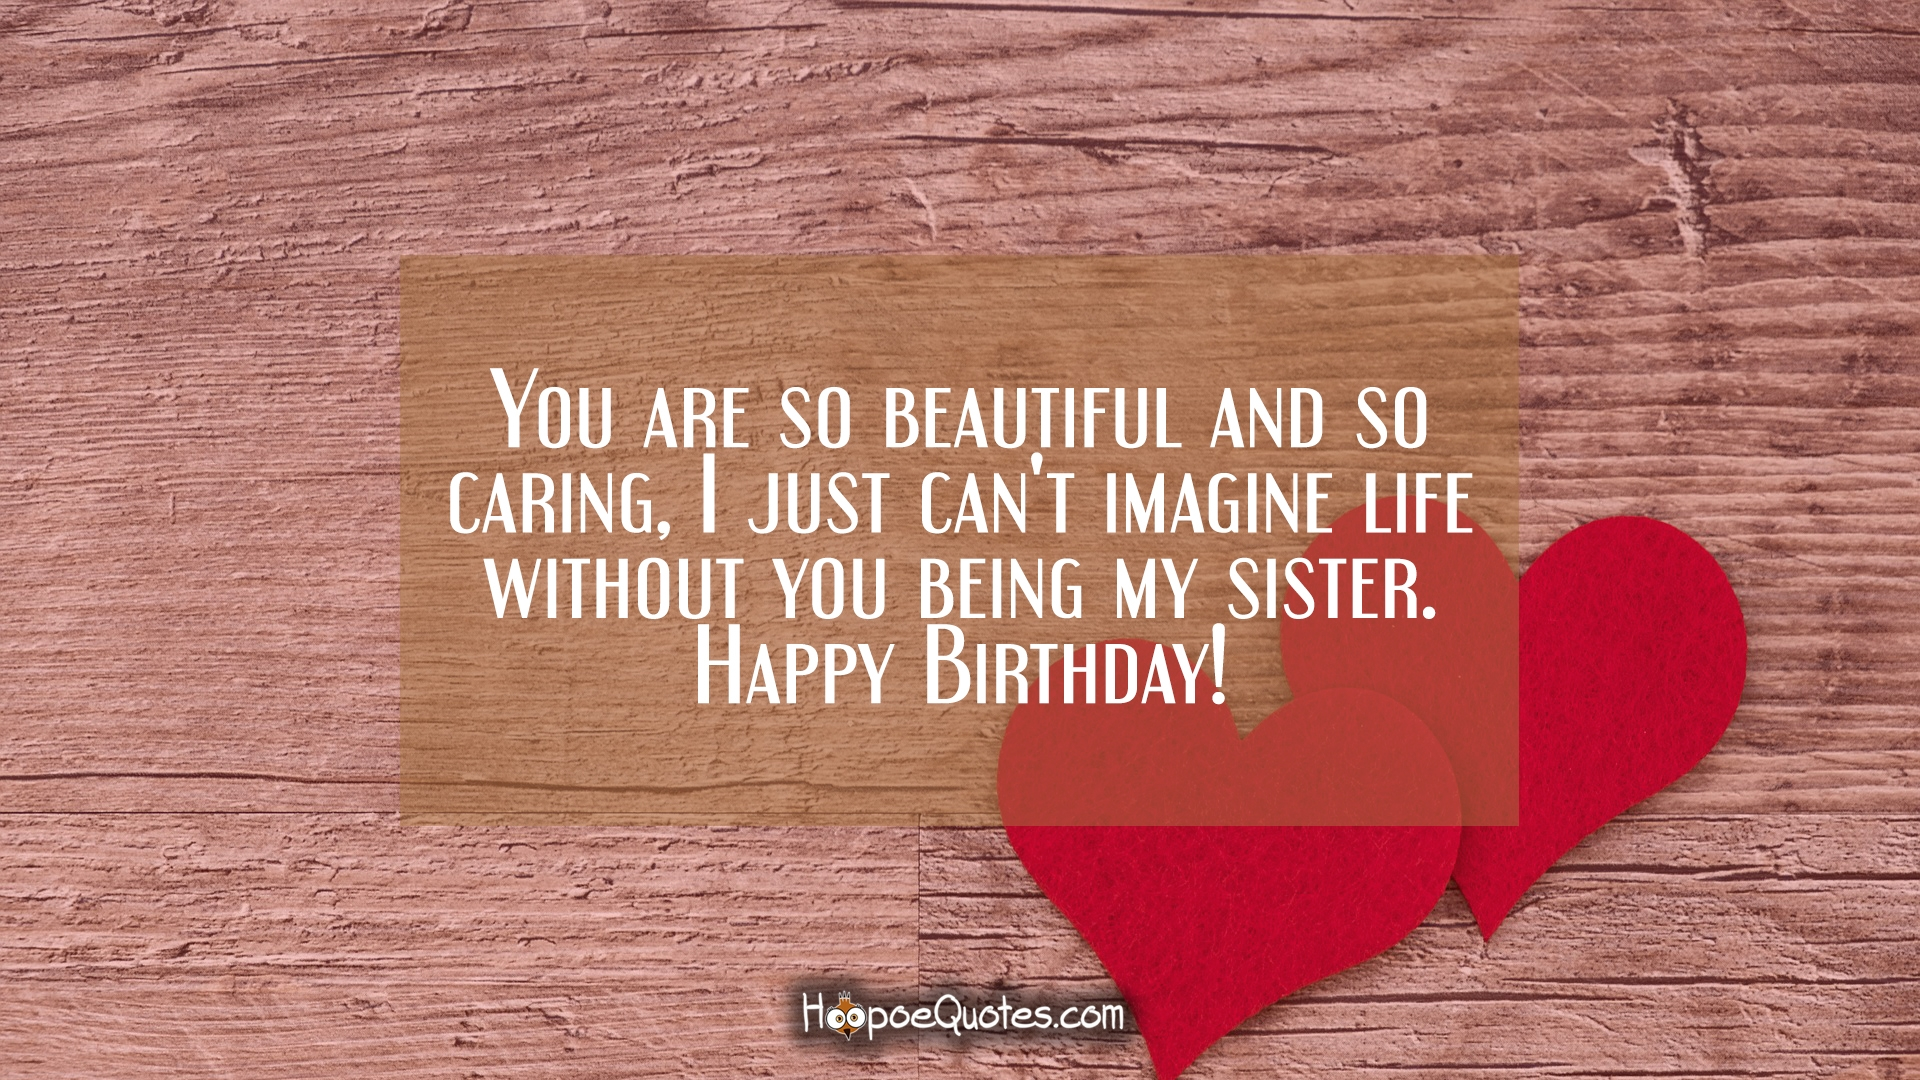 50+ Images] Birthday Wishes for Someone Special in Your Life